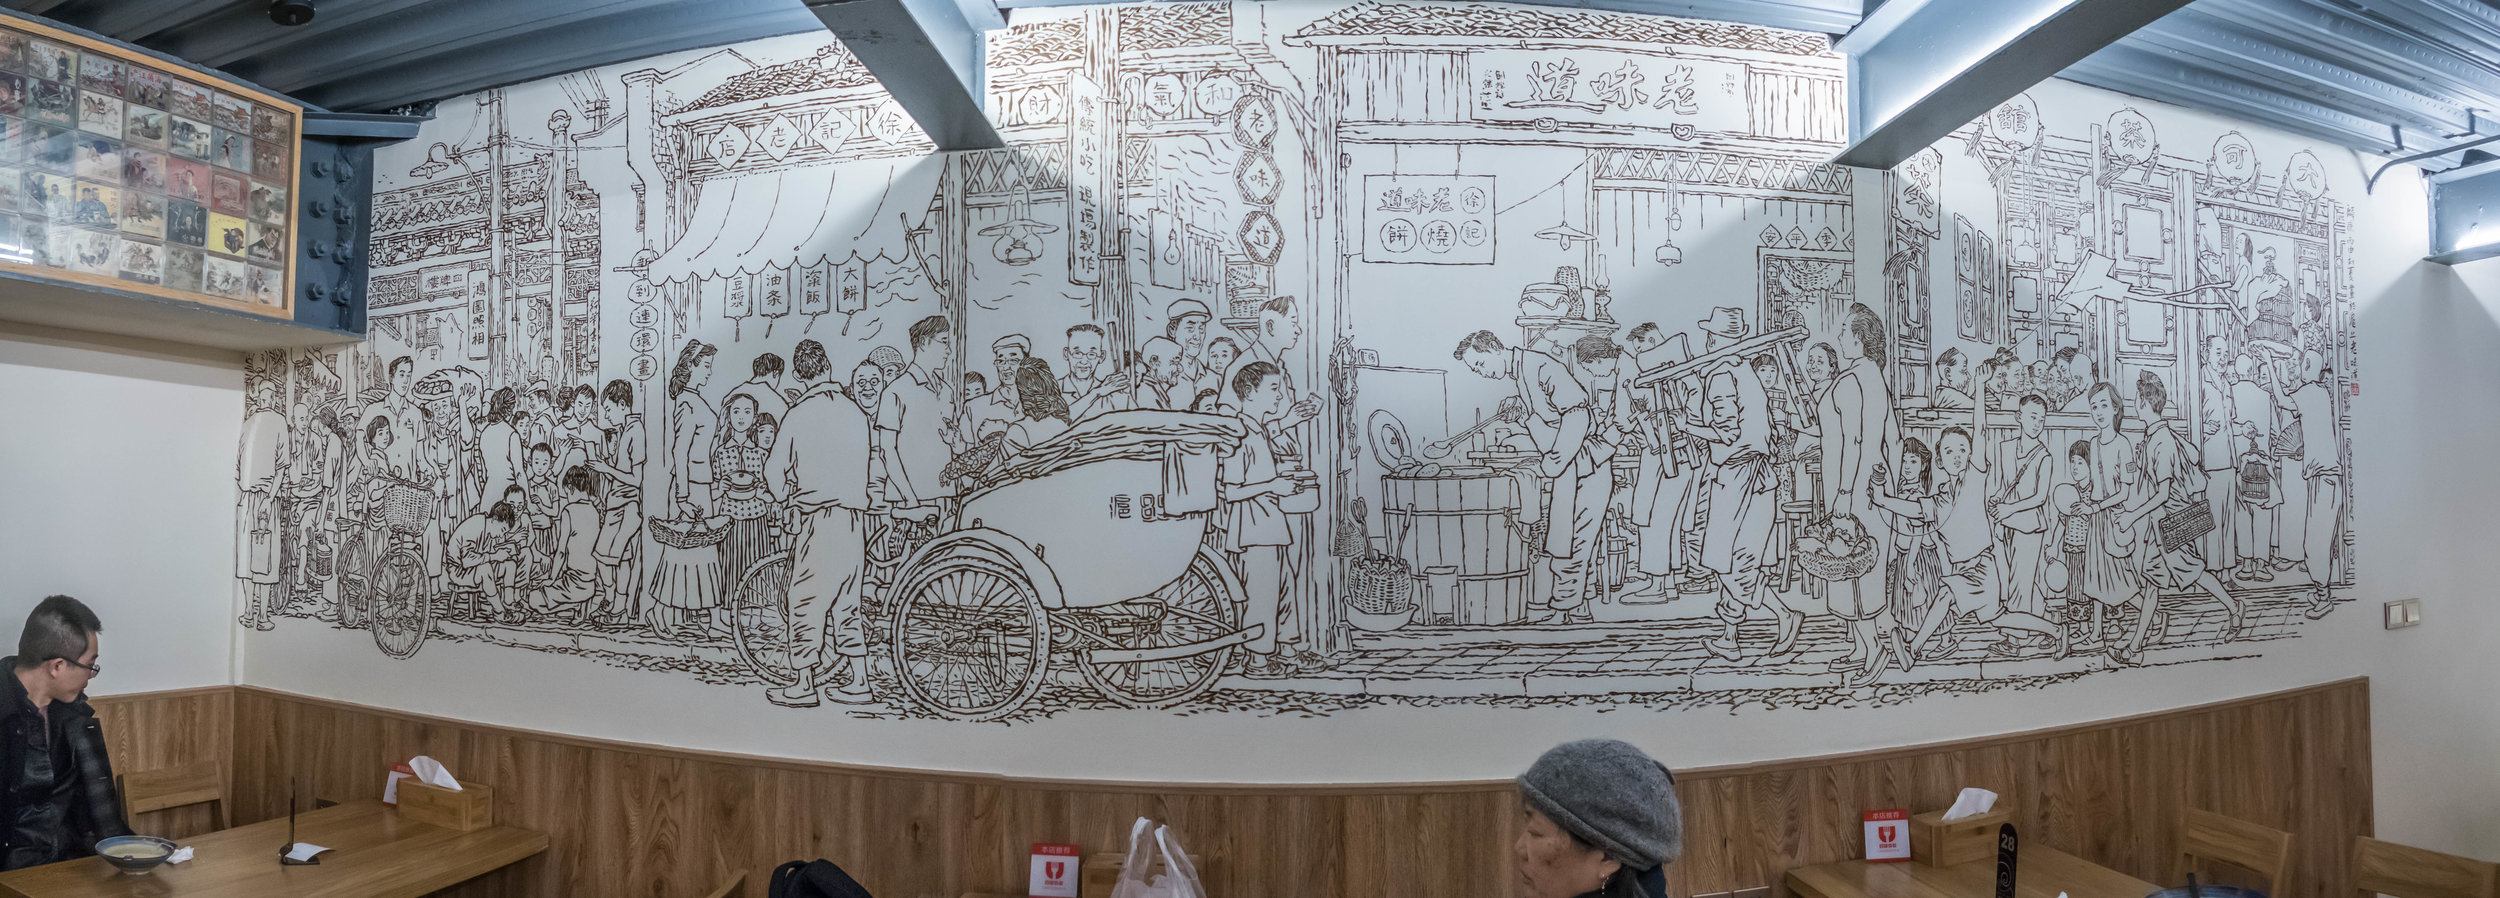 Another more gentile place for breakfast. The mural evokes old Shanghai